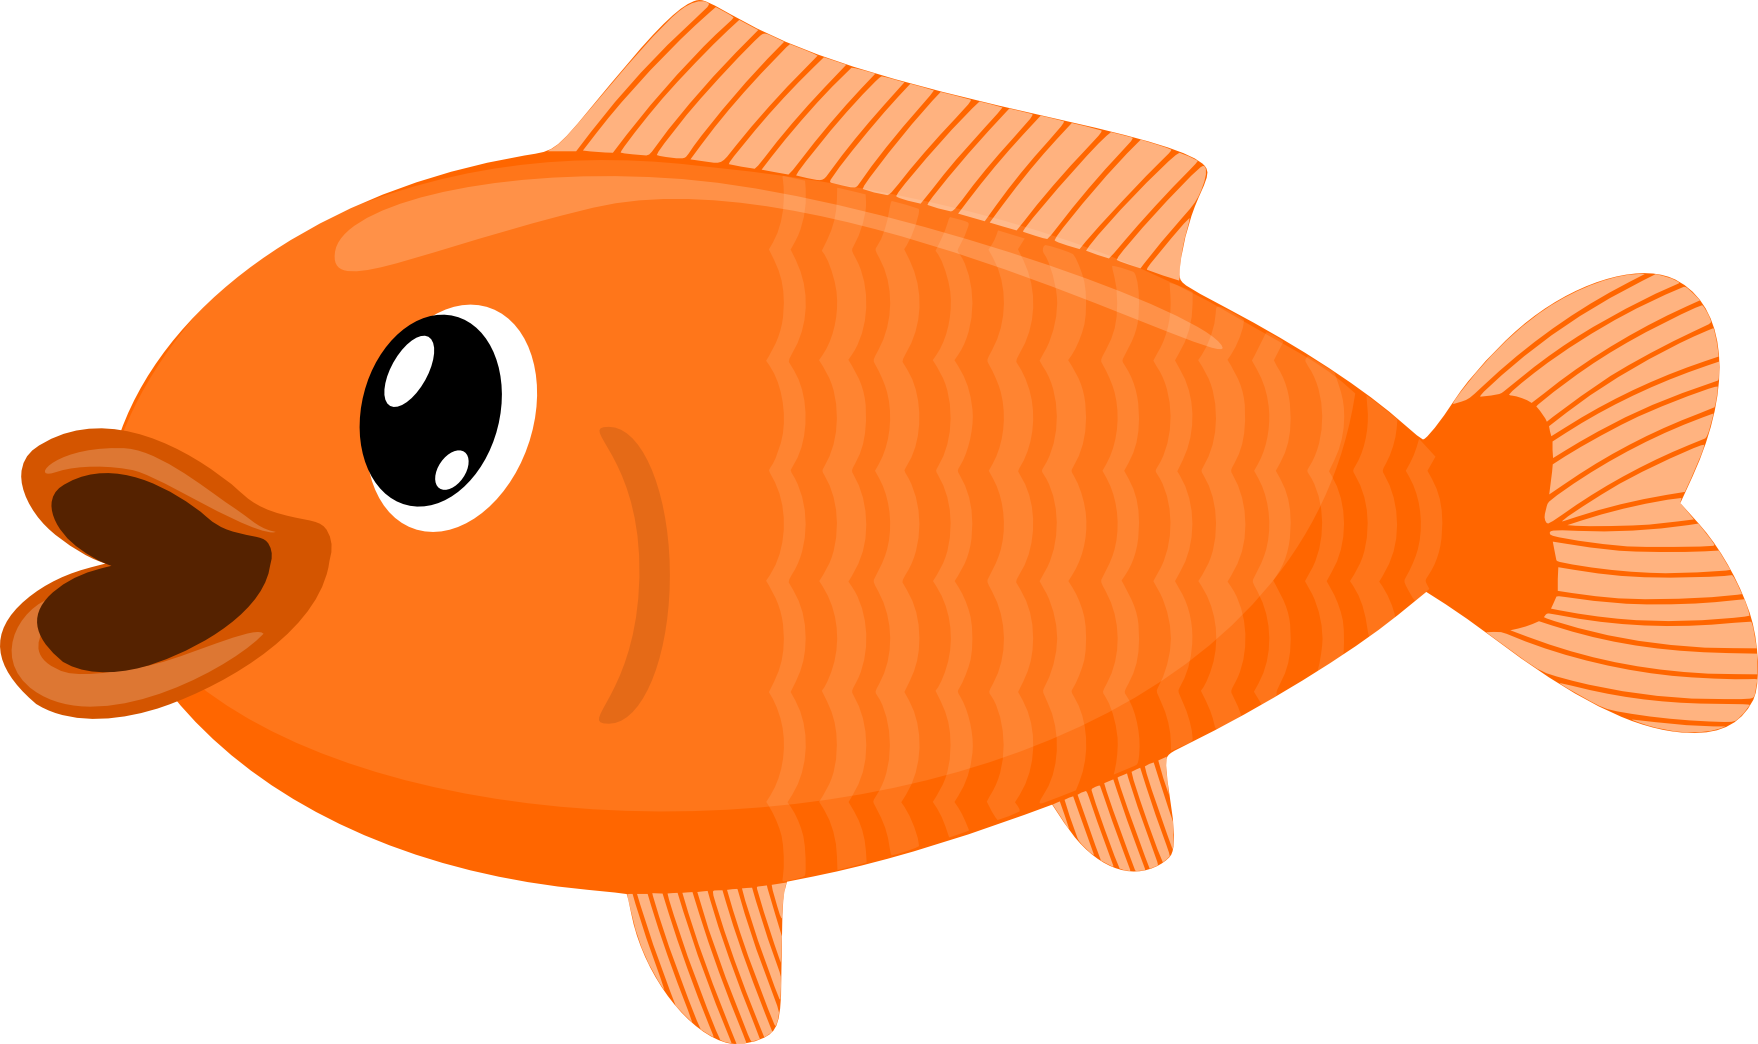 Bubbles and fish clipart picture library library Koi Fish Clipart at GetDrawings.com | Free for personal use Koi Fish ... picture library library